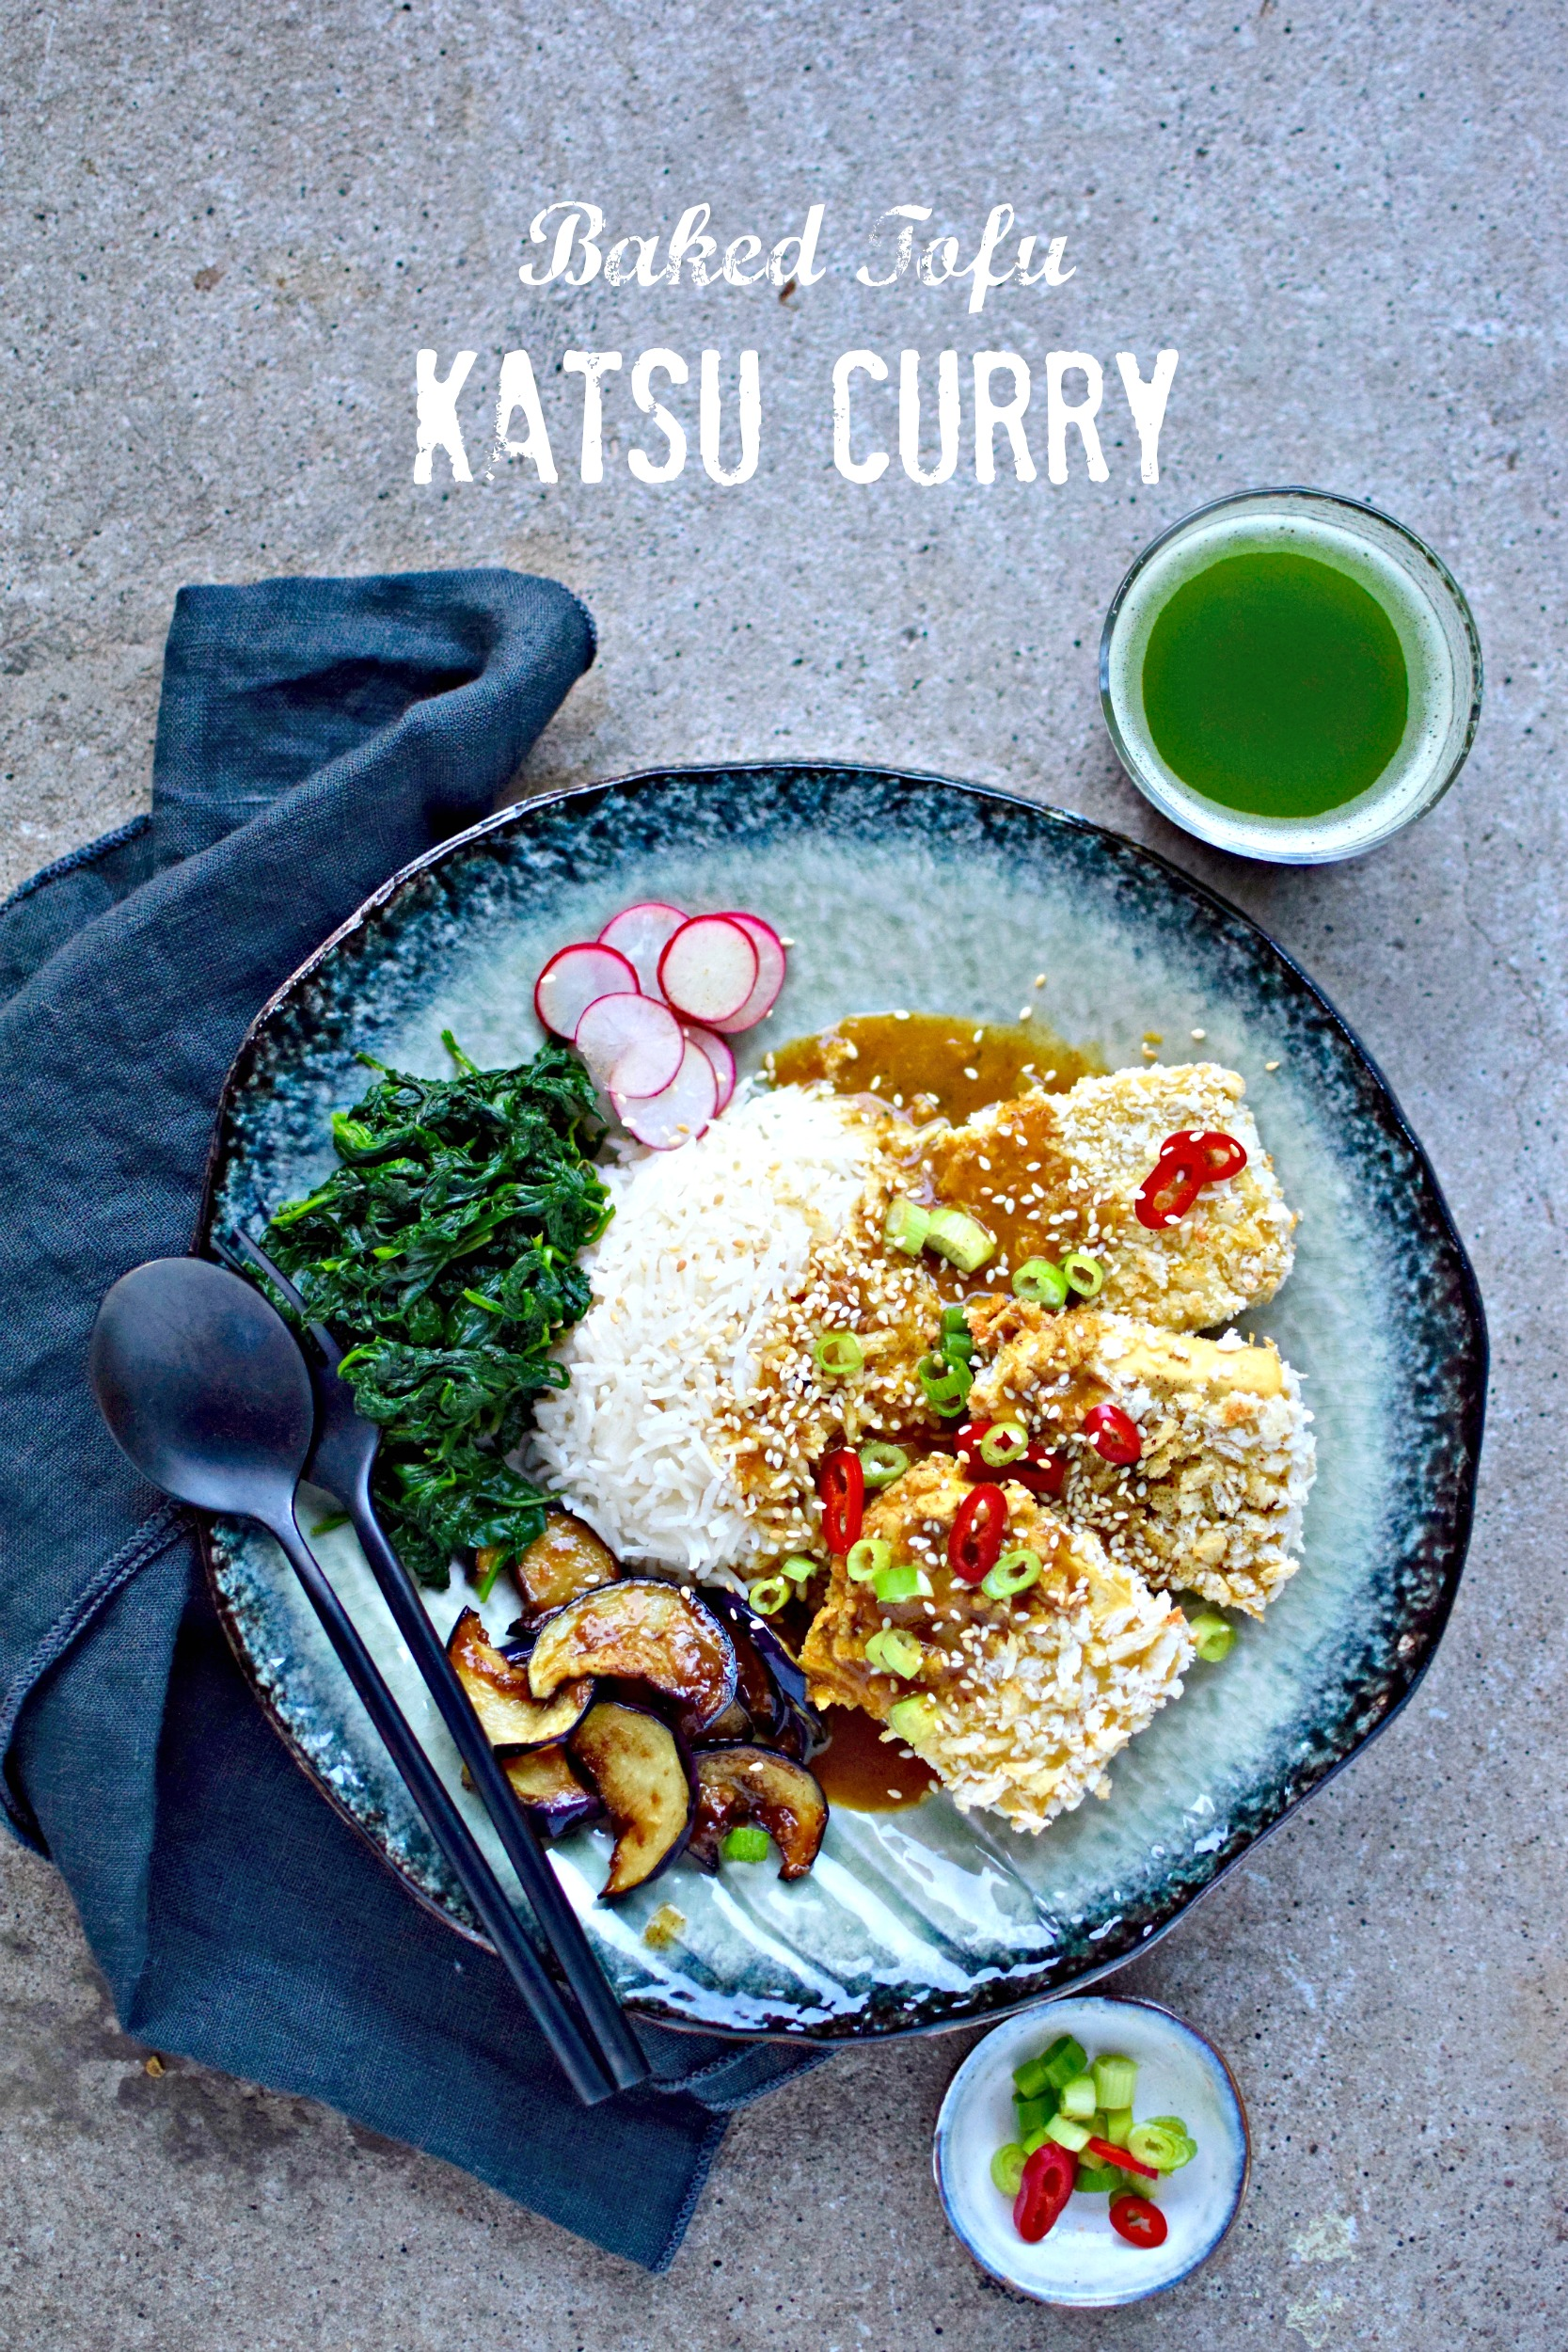 How To Make Crispy Baked Tofu Katsu Curry Vegan Recipe Food To Glow